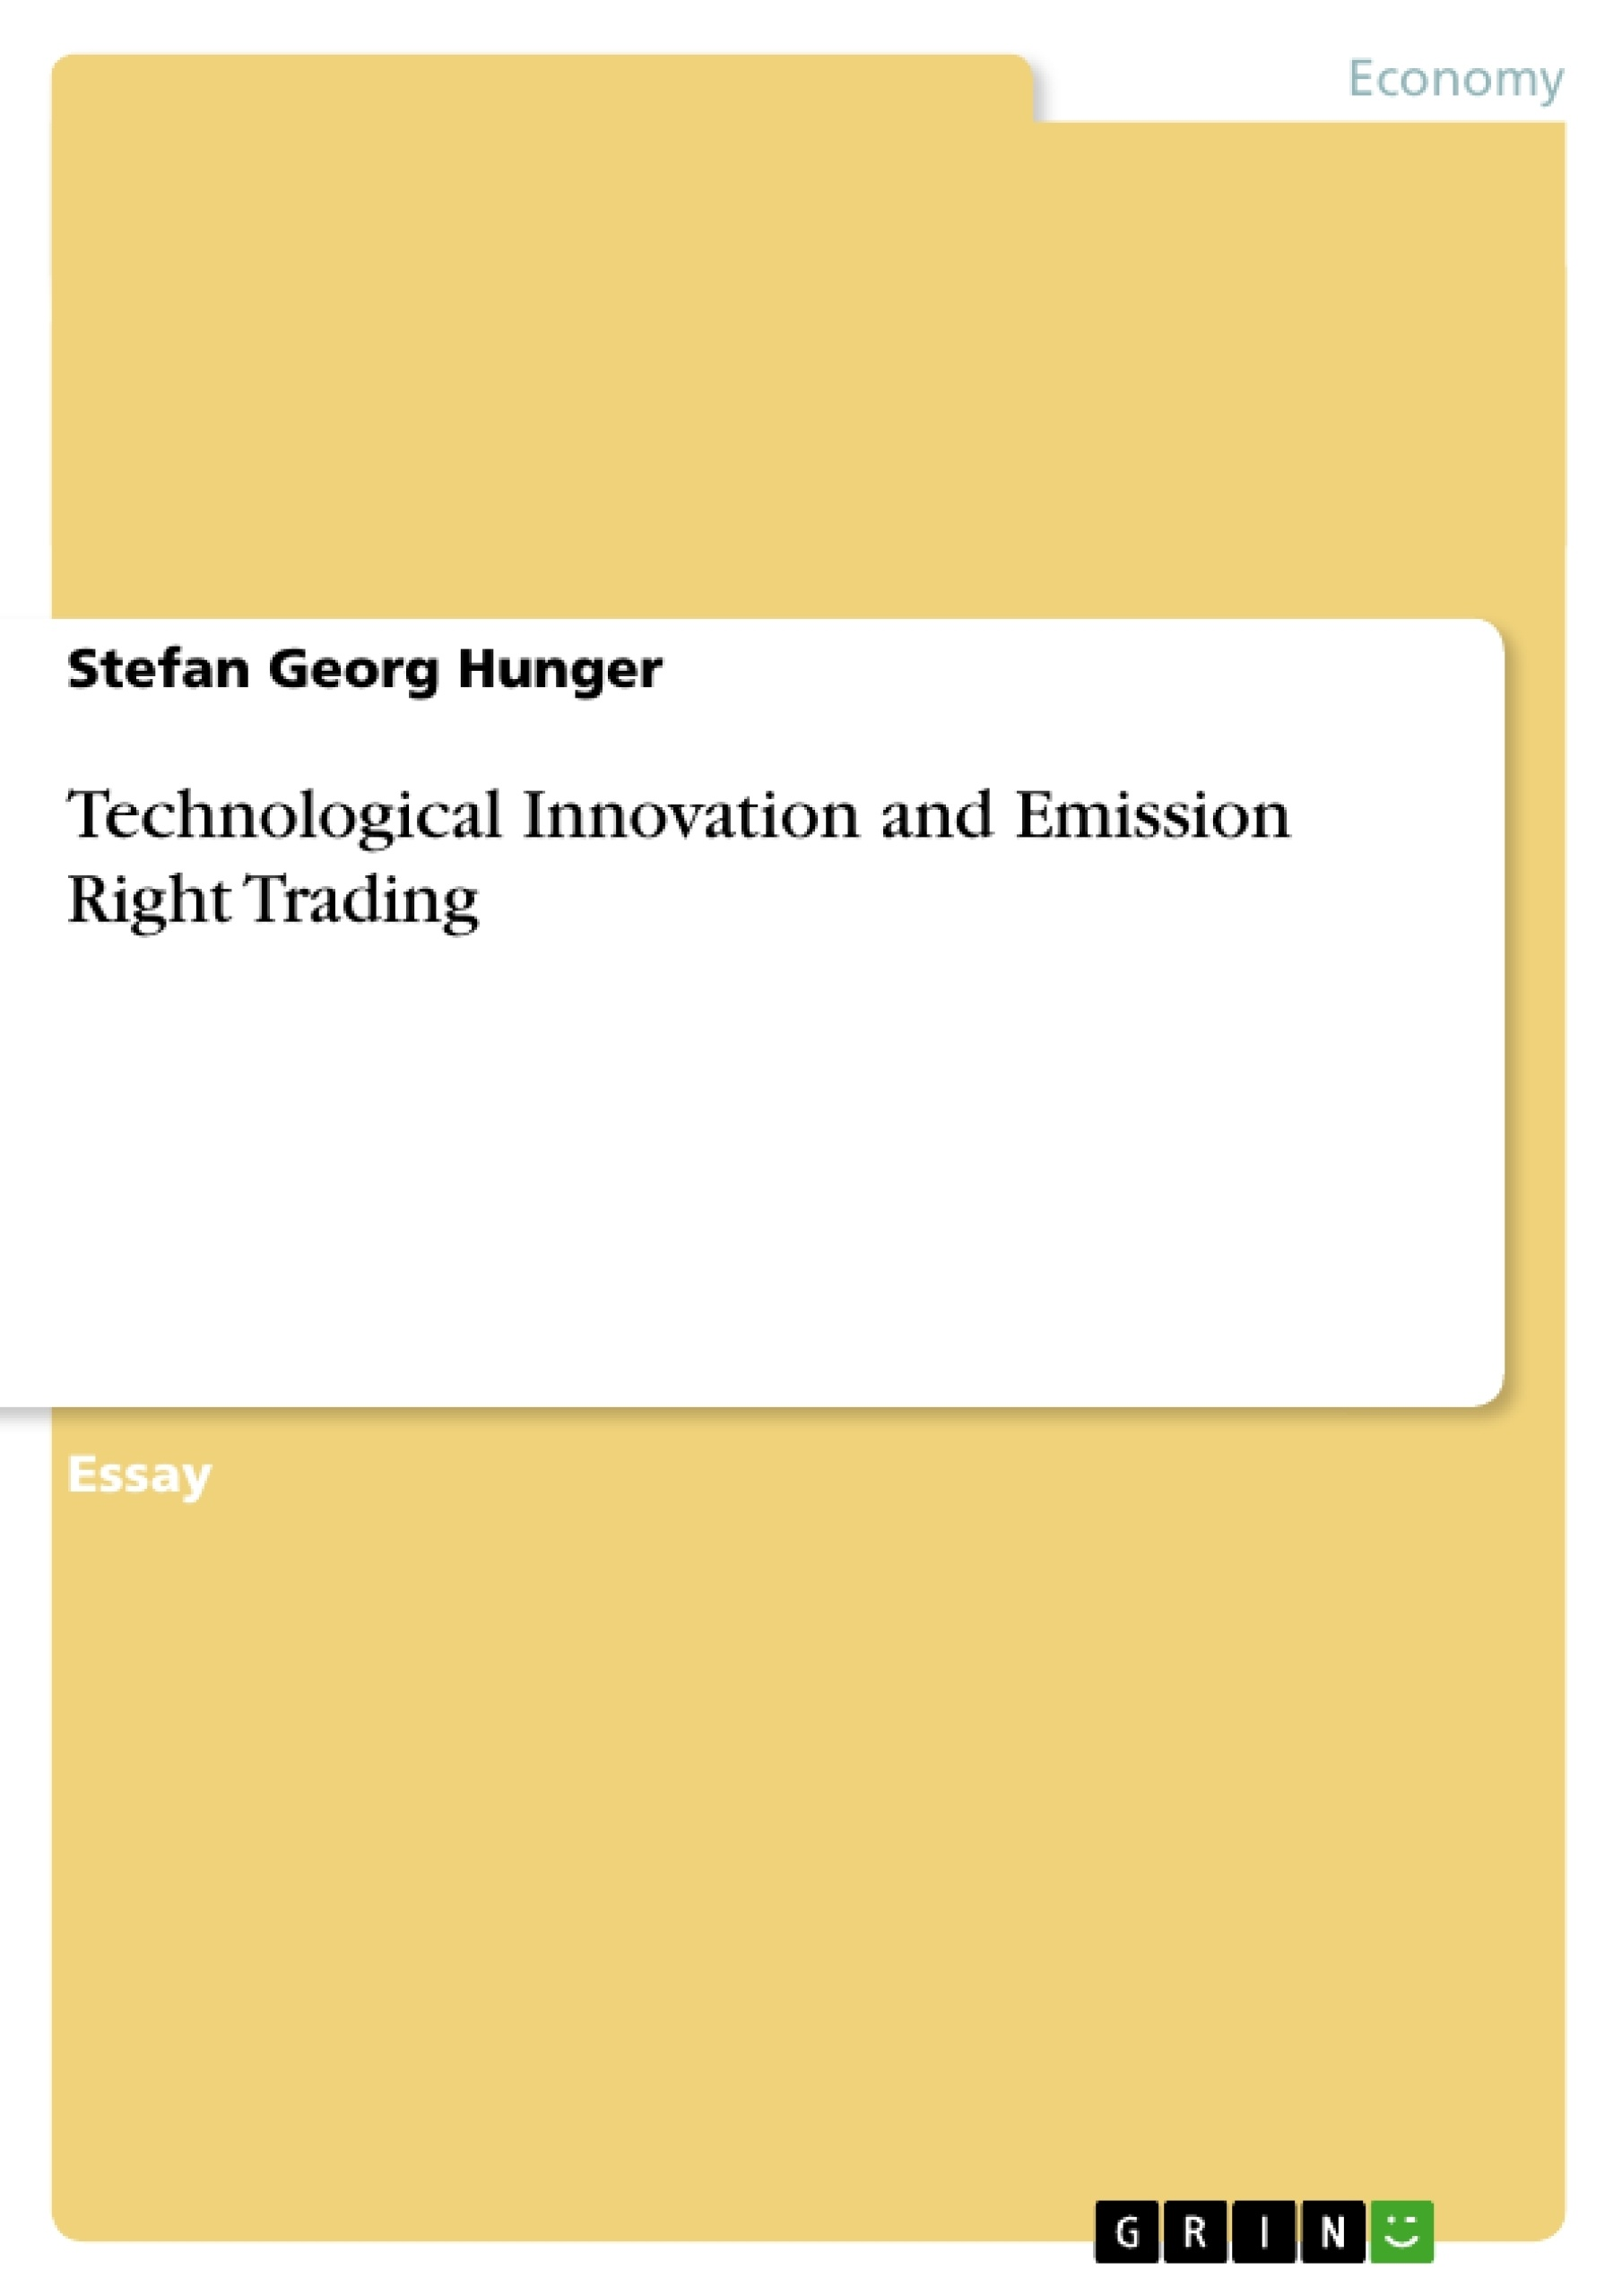 Title: Technological Innovation and Emission Right Trading